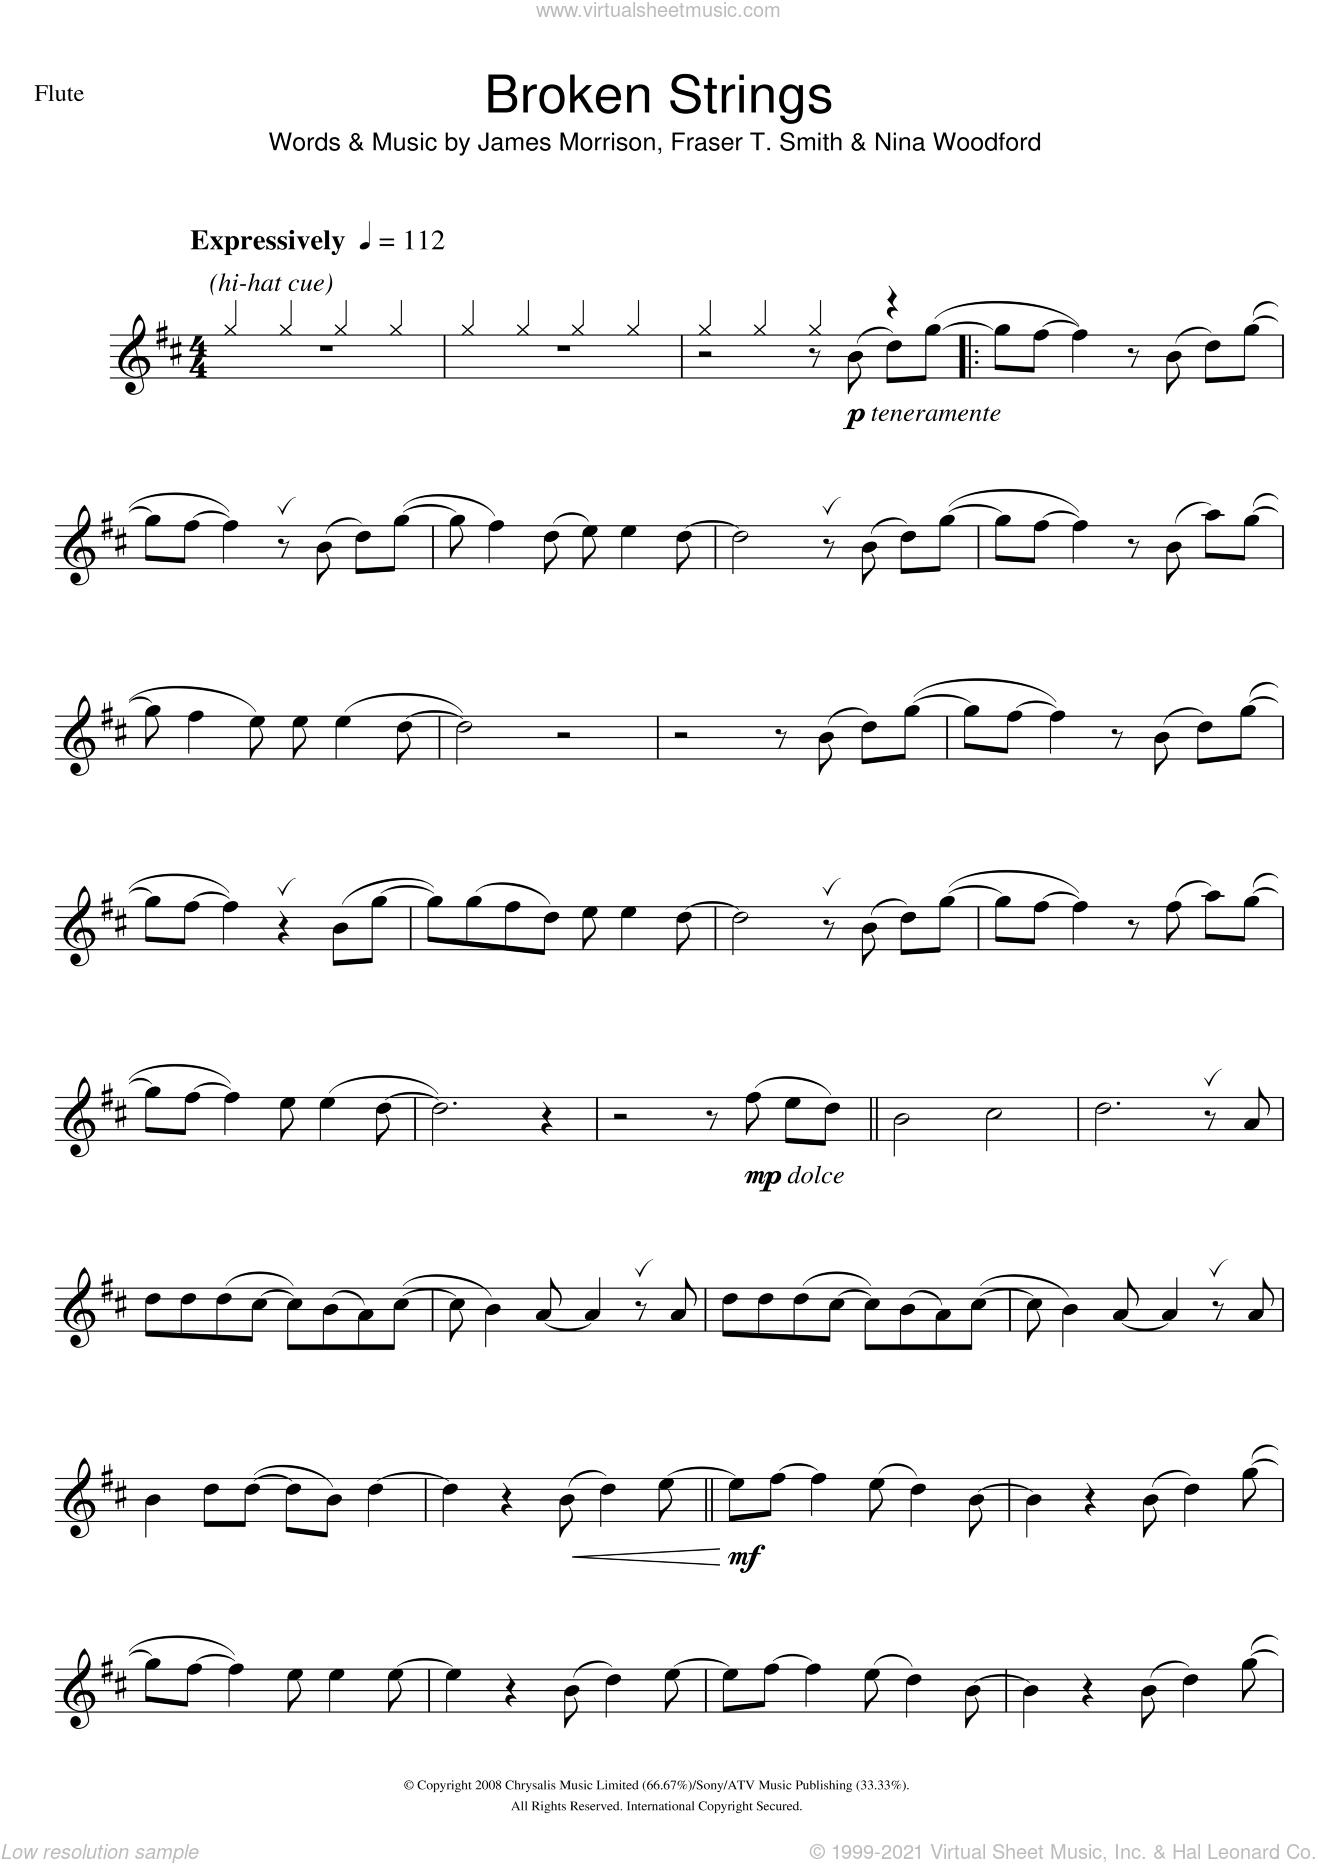 Broken Strings sheet music for flute solo by James Morrison, Fraser T. Smith and Nina Woodford, intermediate skill level